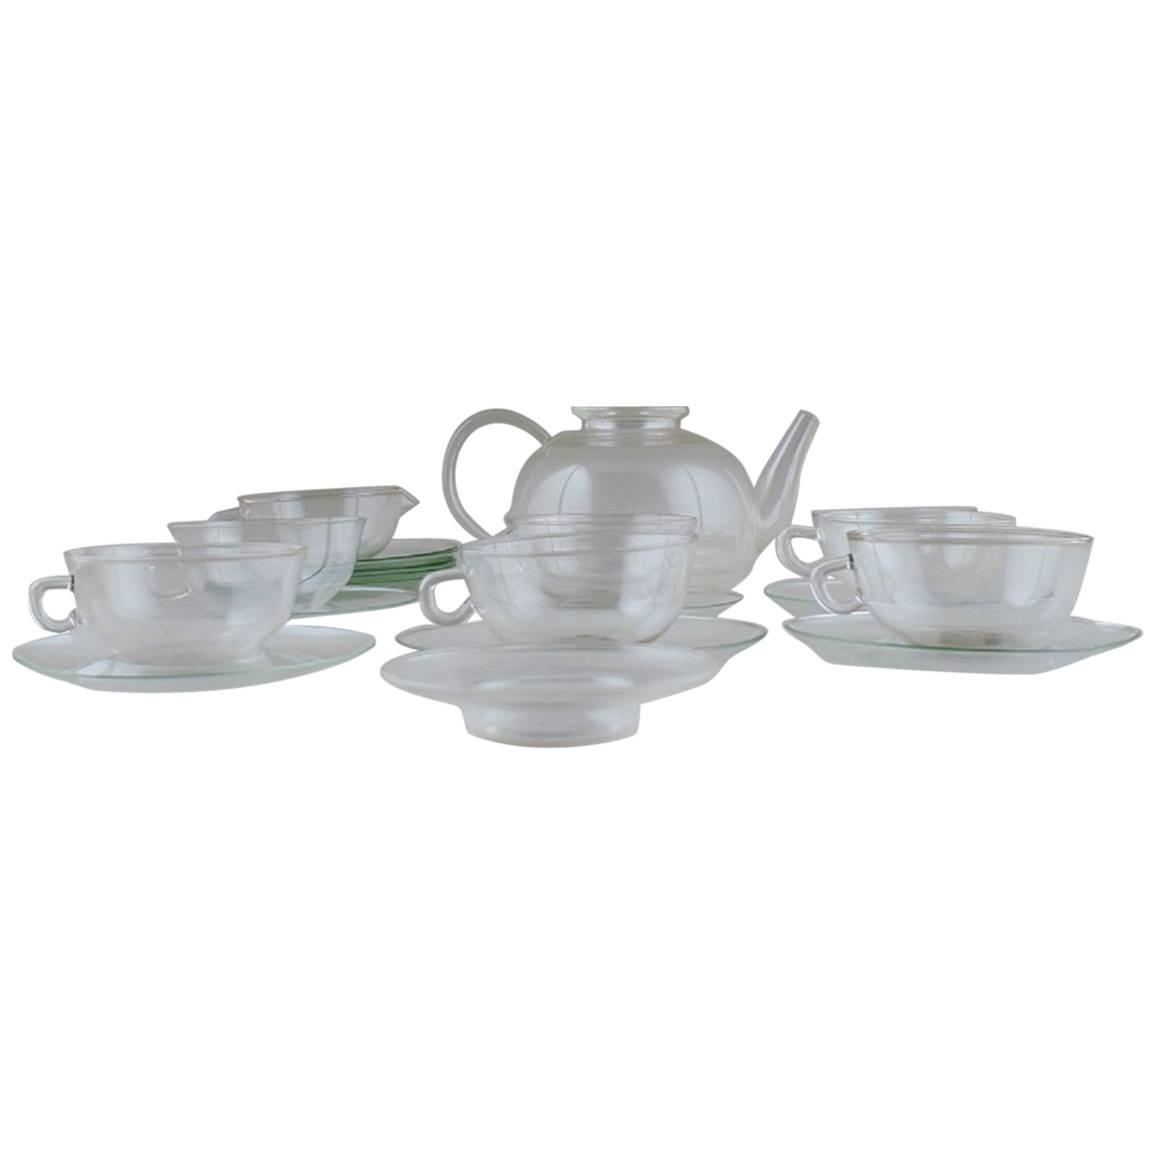 wilhelm wagenfeld jena tea set of clear glass for sale. Black Bedroom Furniture Sets. Home Design Ideas